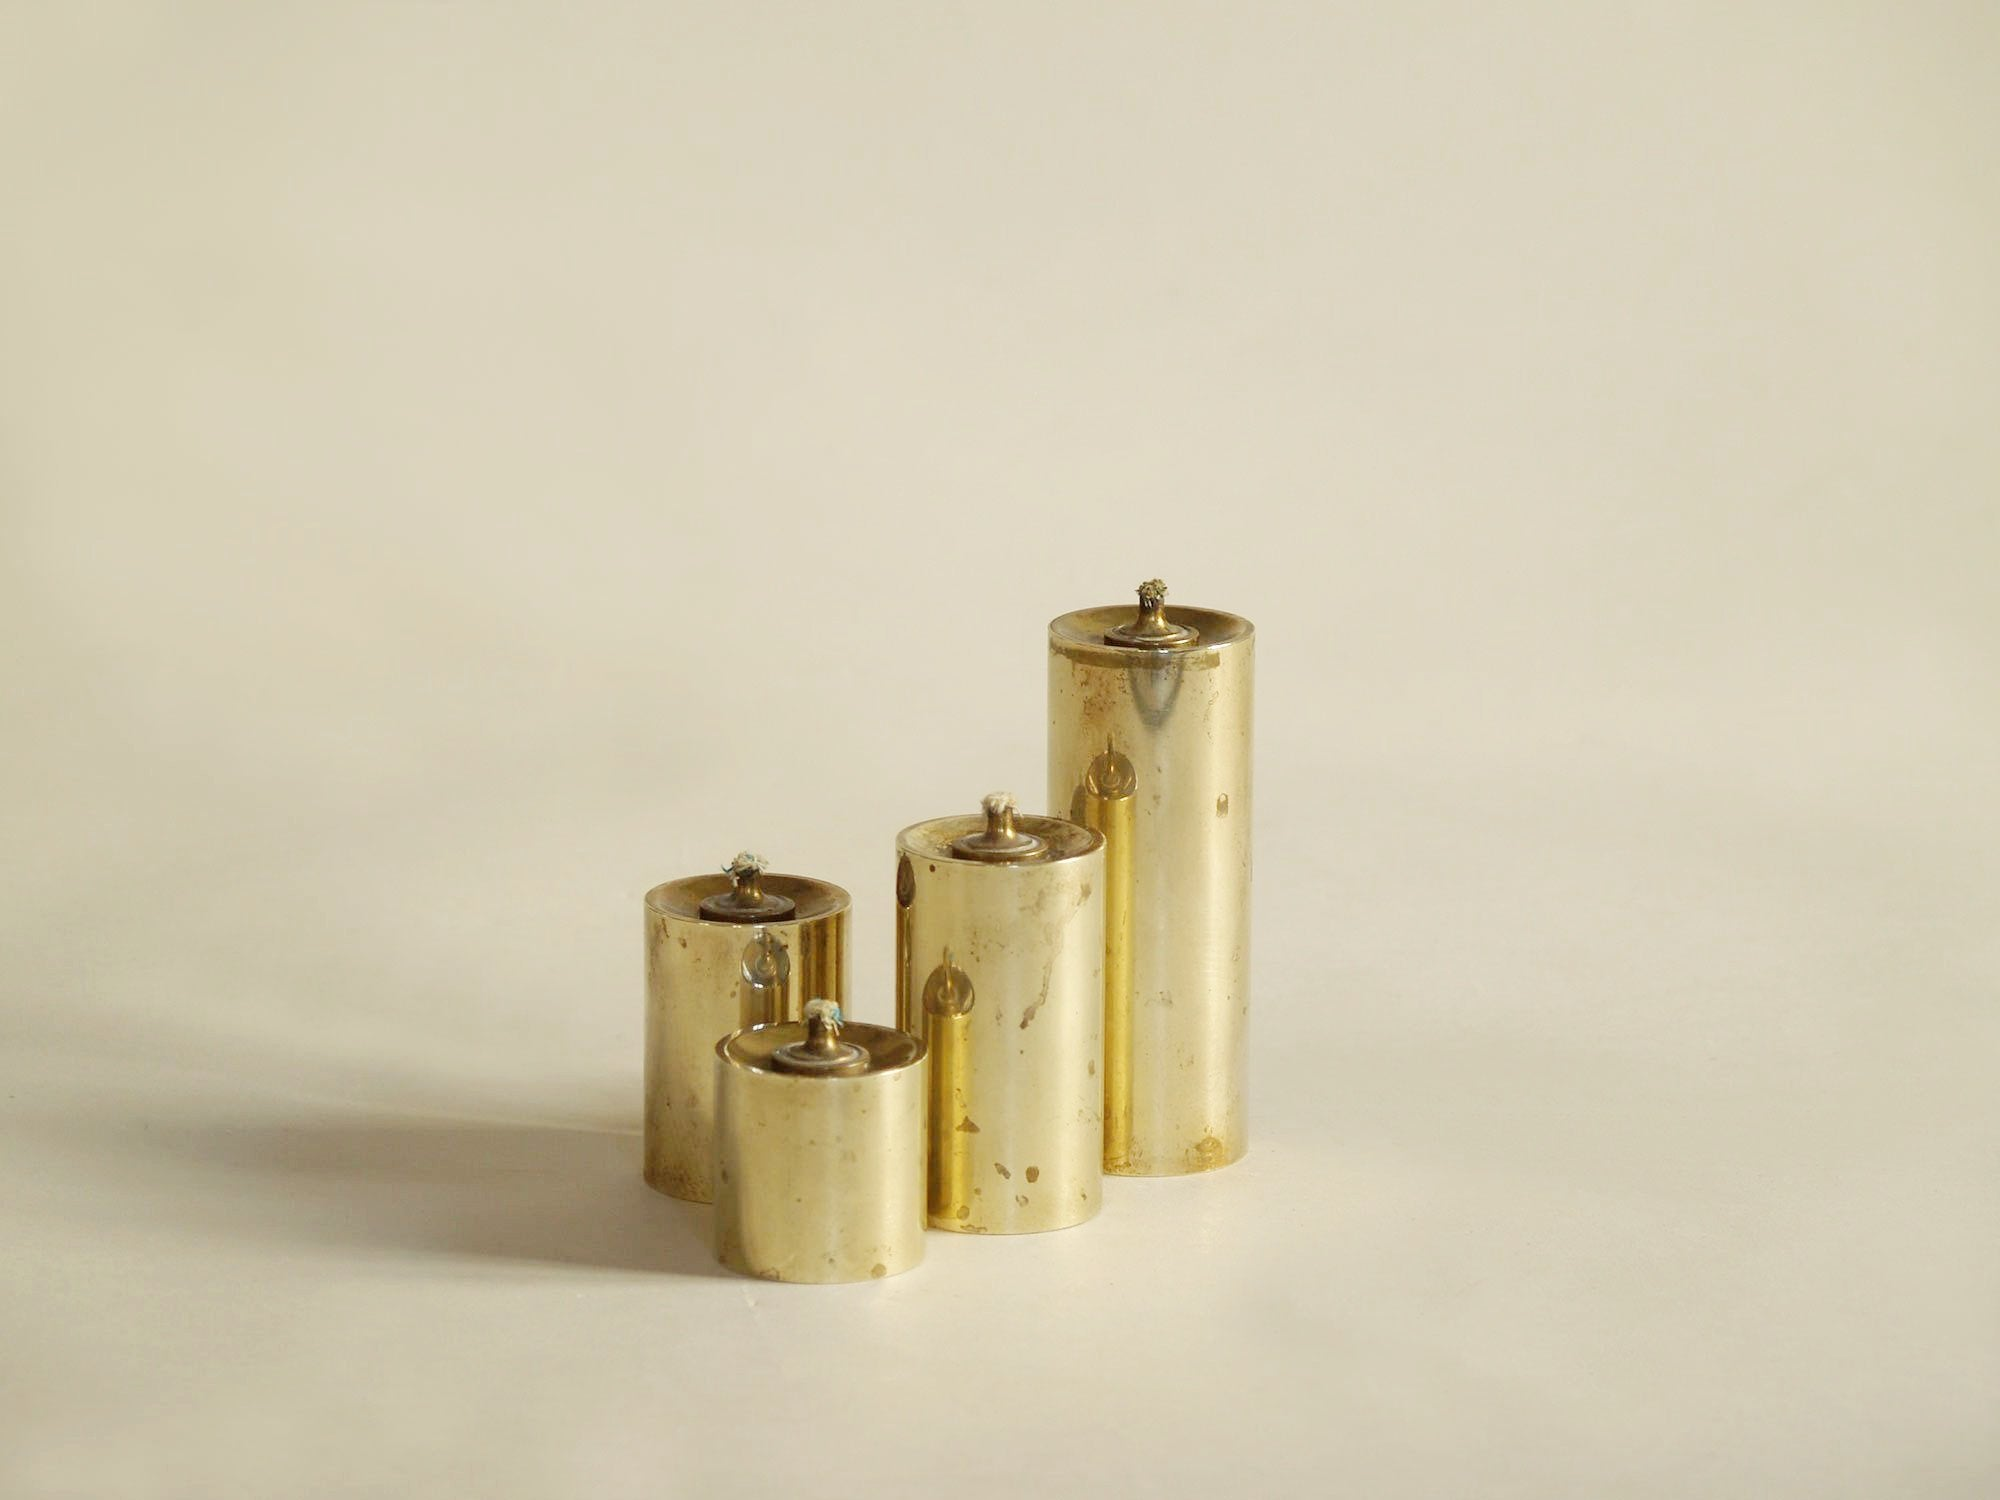 Série de quatre flambeaux modernistes à huile, Danemark (vers 1955)..Set of 4 modernist Candle holders, Denmark (circa 1955)